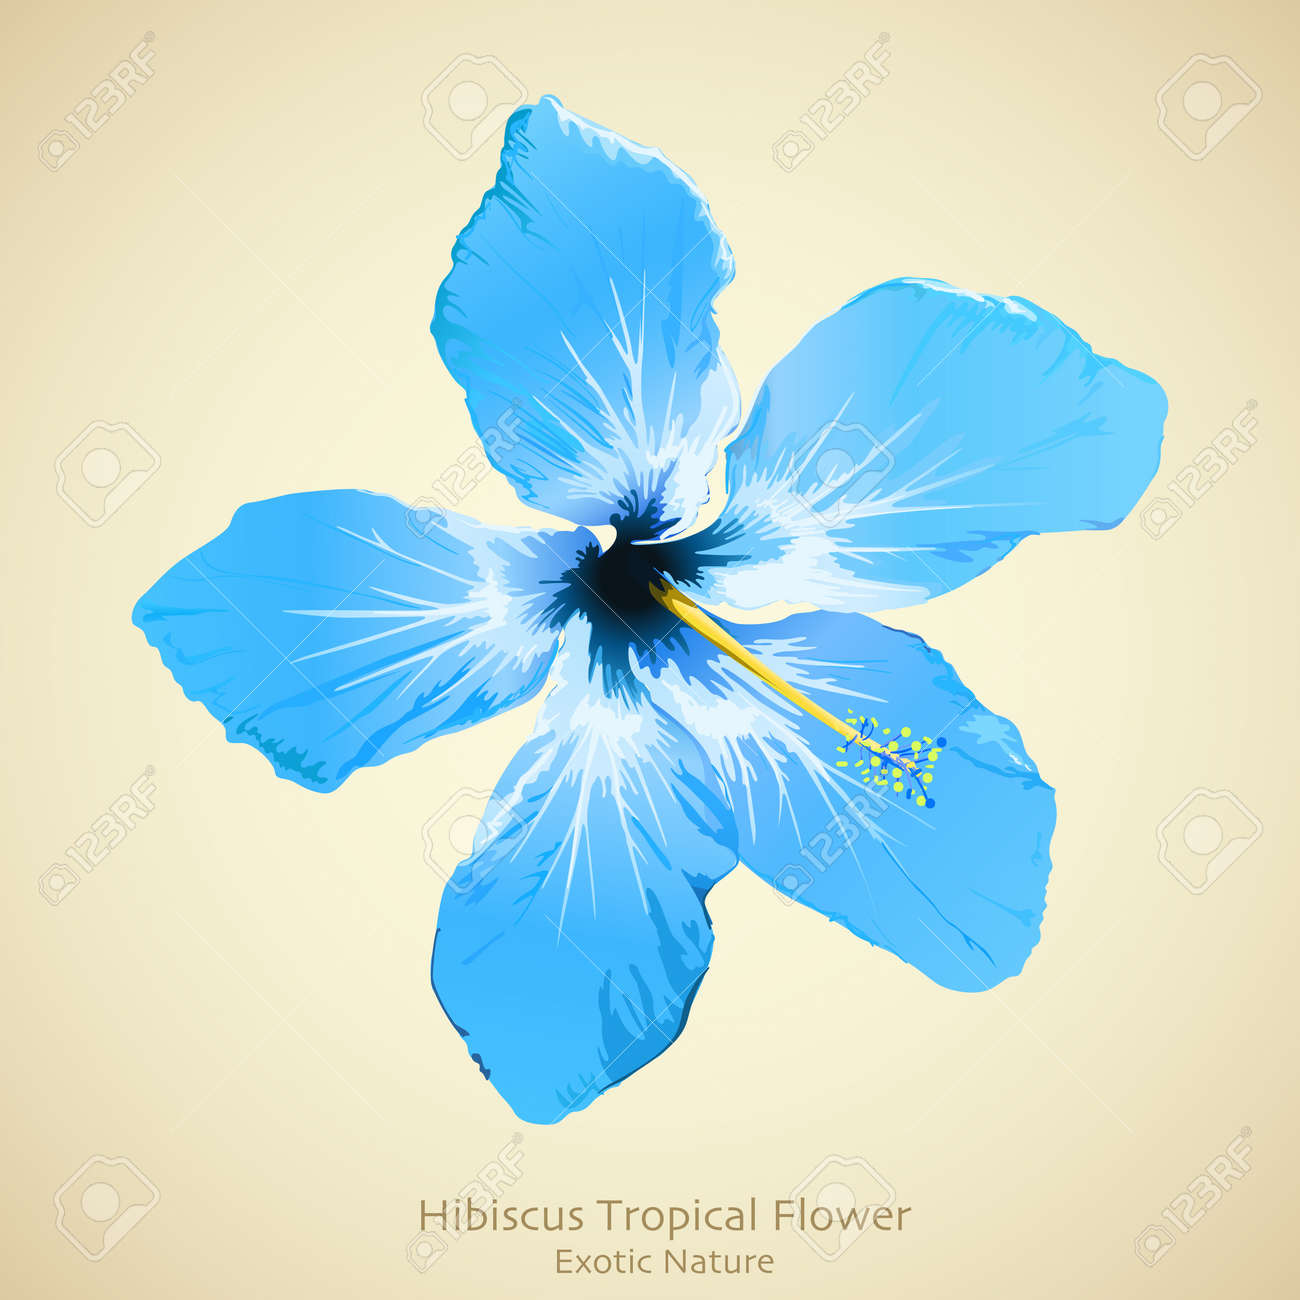 Hibiscus Flower Illustration Tropical Background Design Royalty